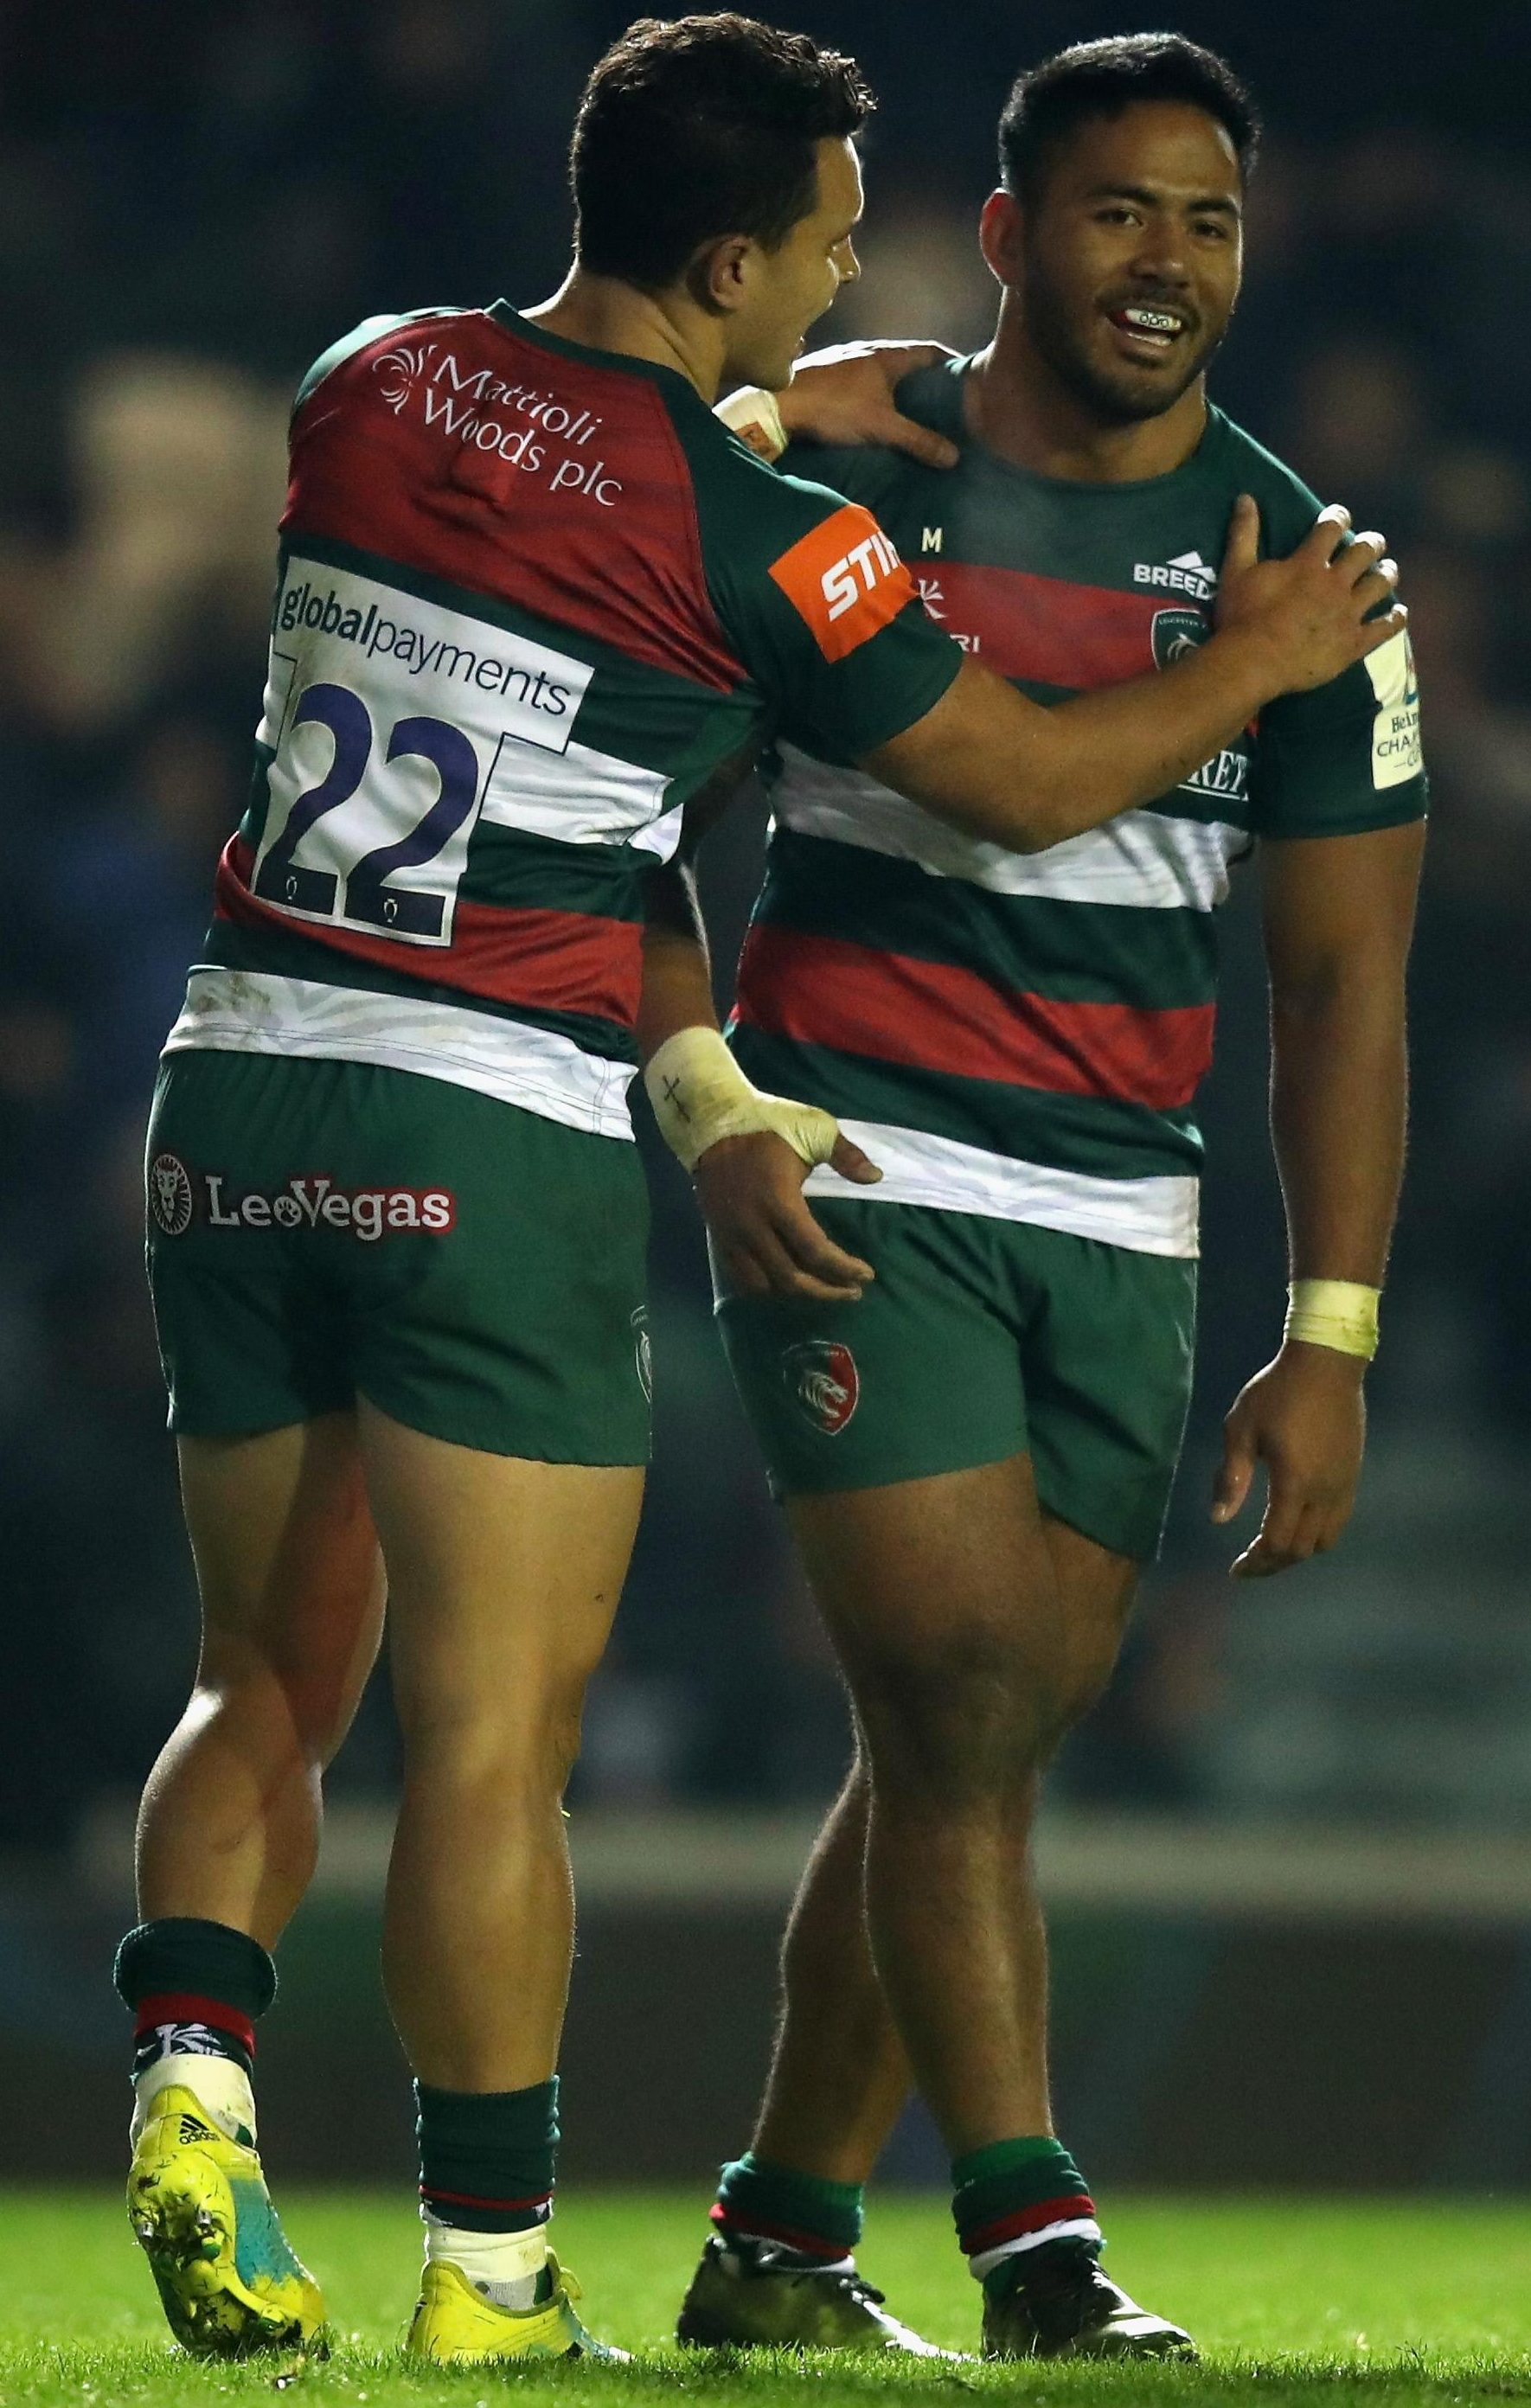 England fans can't wait to see Tuilagi in action again